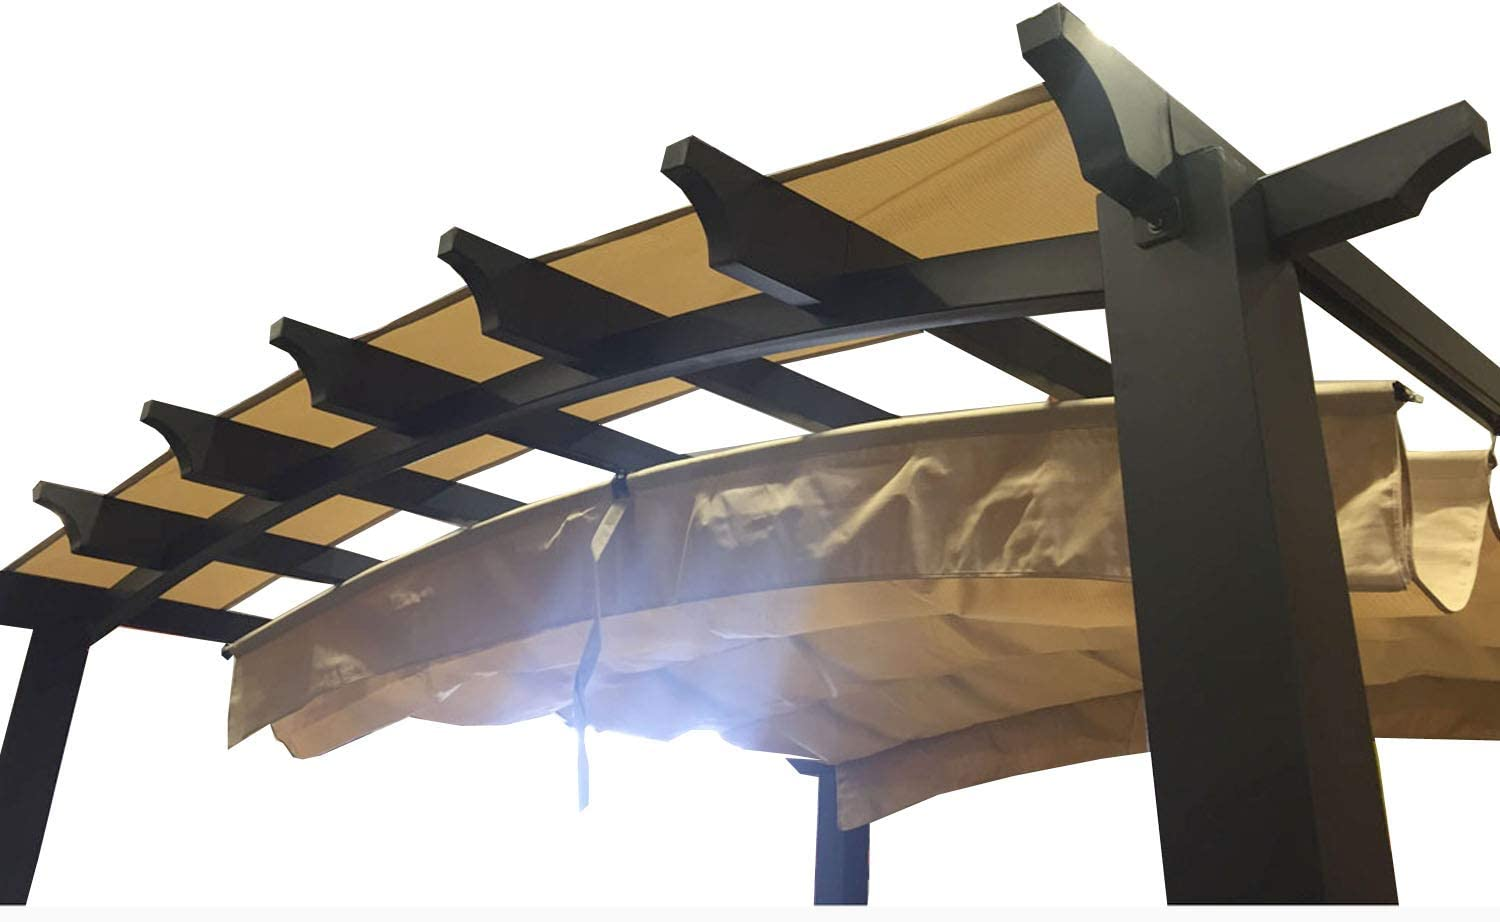 alpha-ene.co.jp Garden Winds Replacement Canopy for The Hampton ...